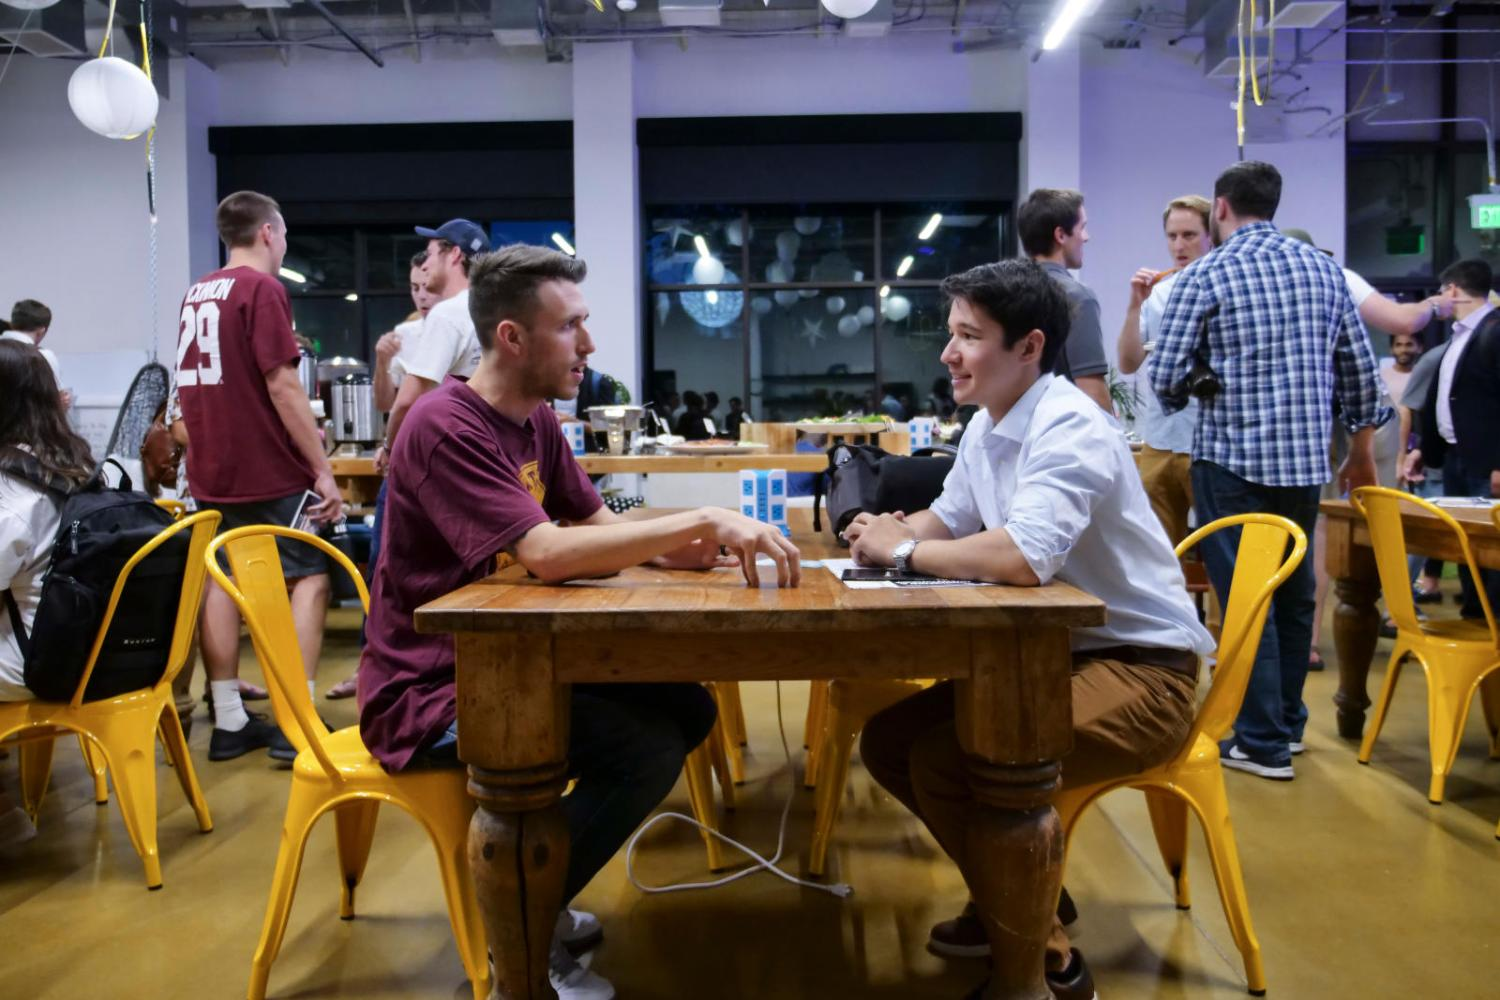 two students have a conversation at a table